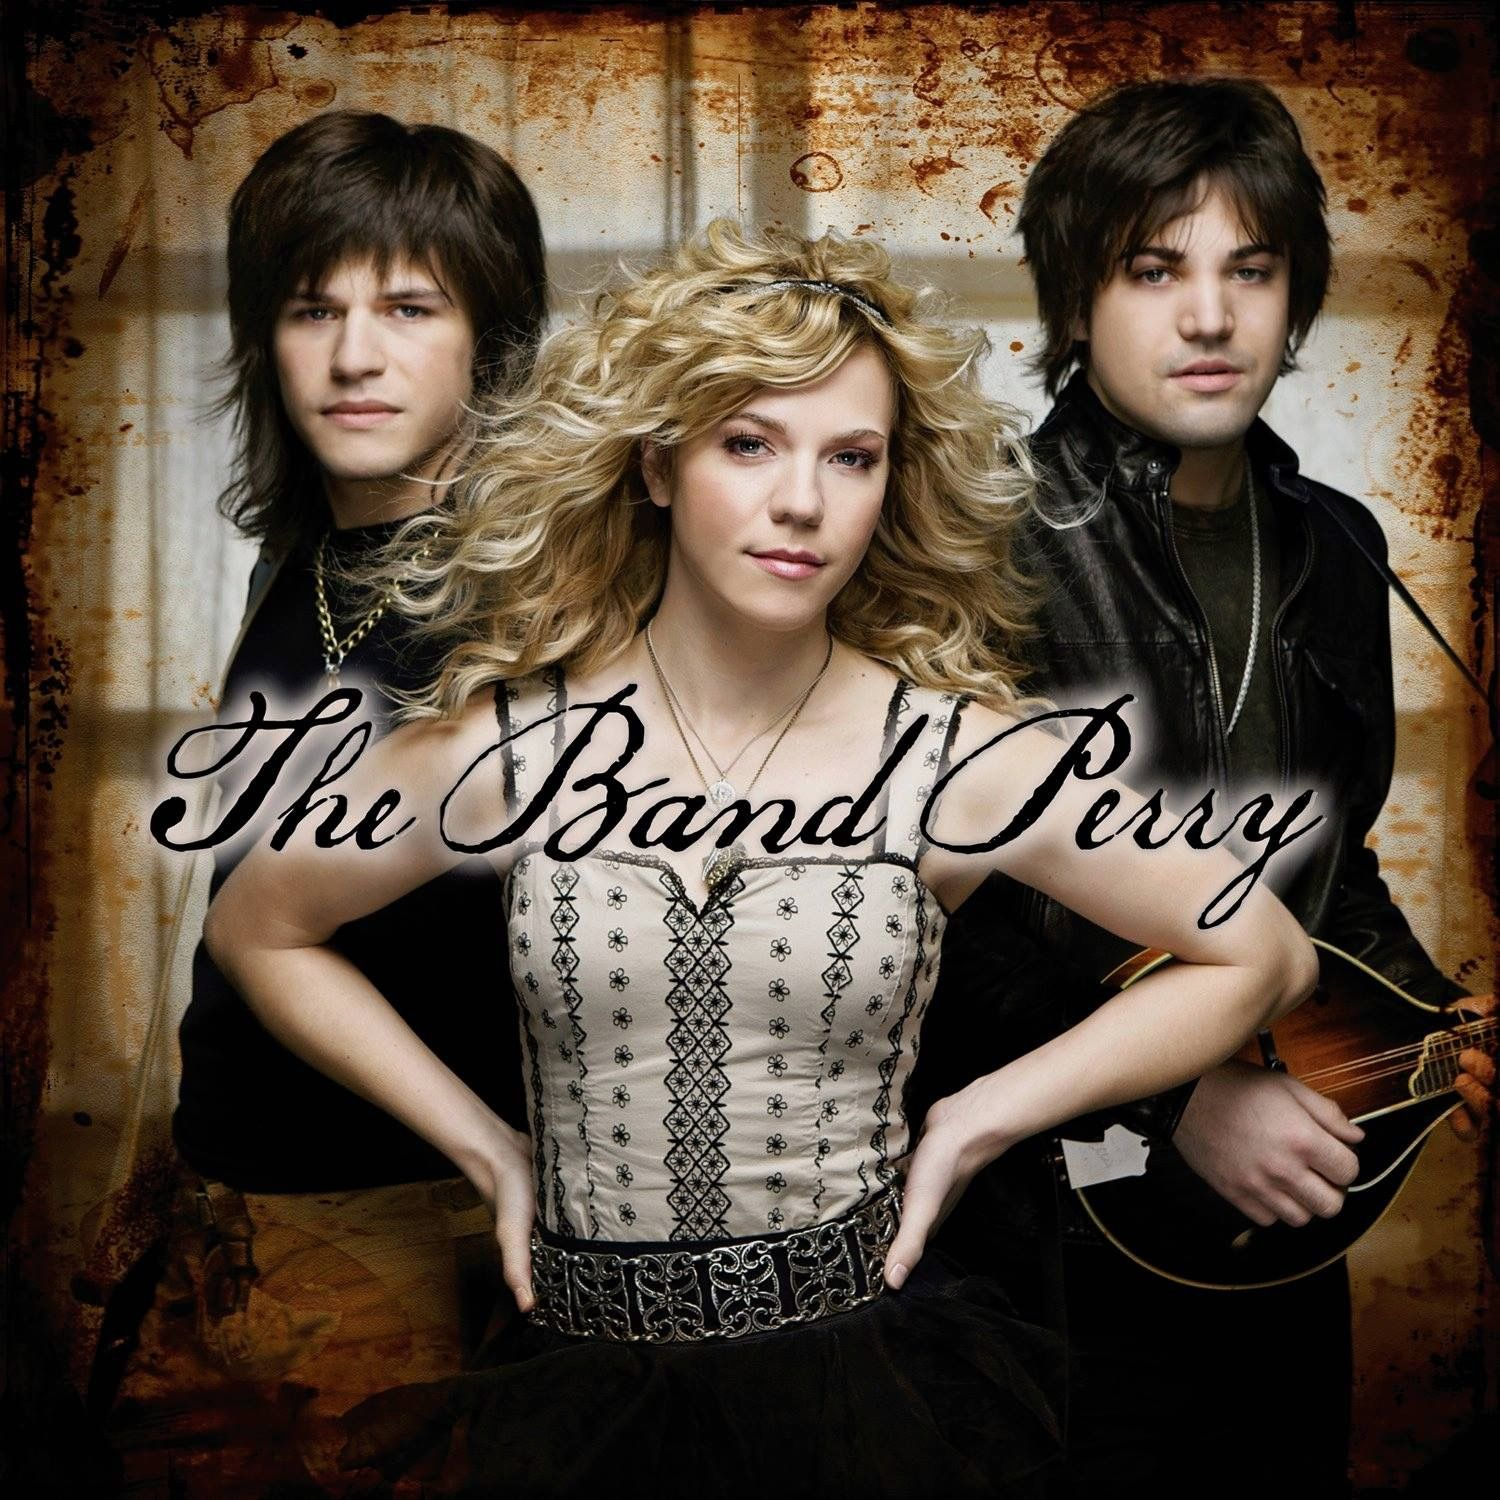 Pin by Tina Louk on Music | The band perry, If i die young